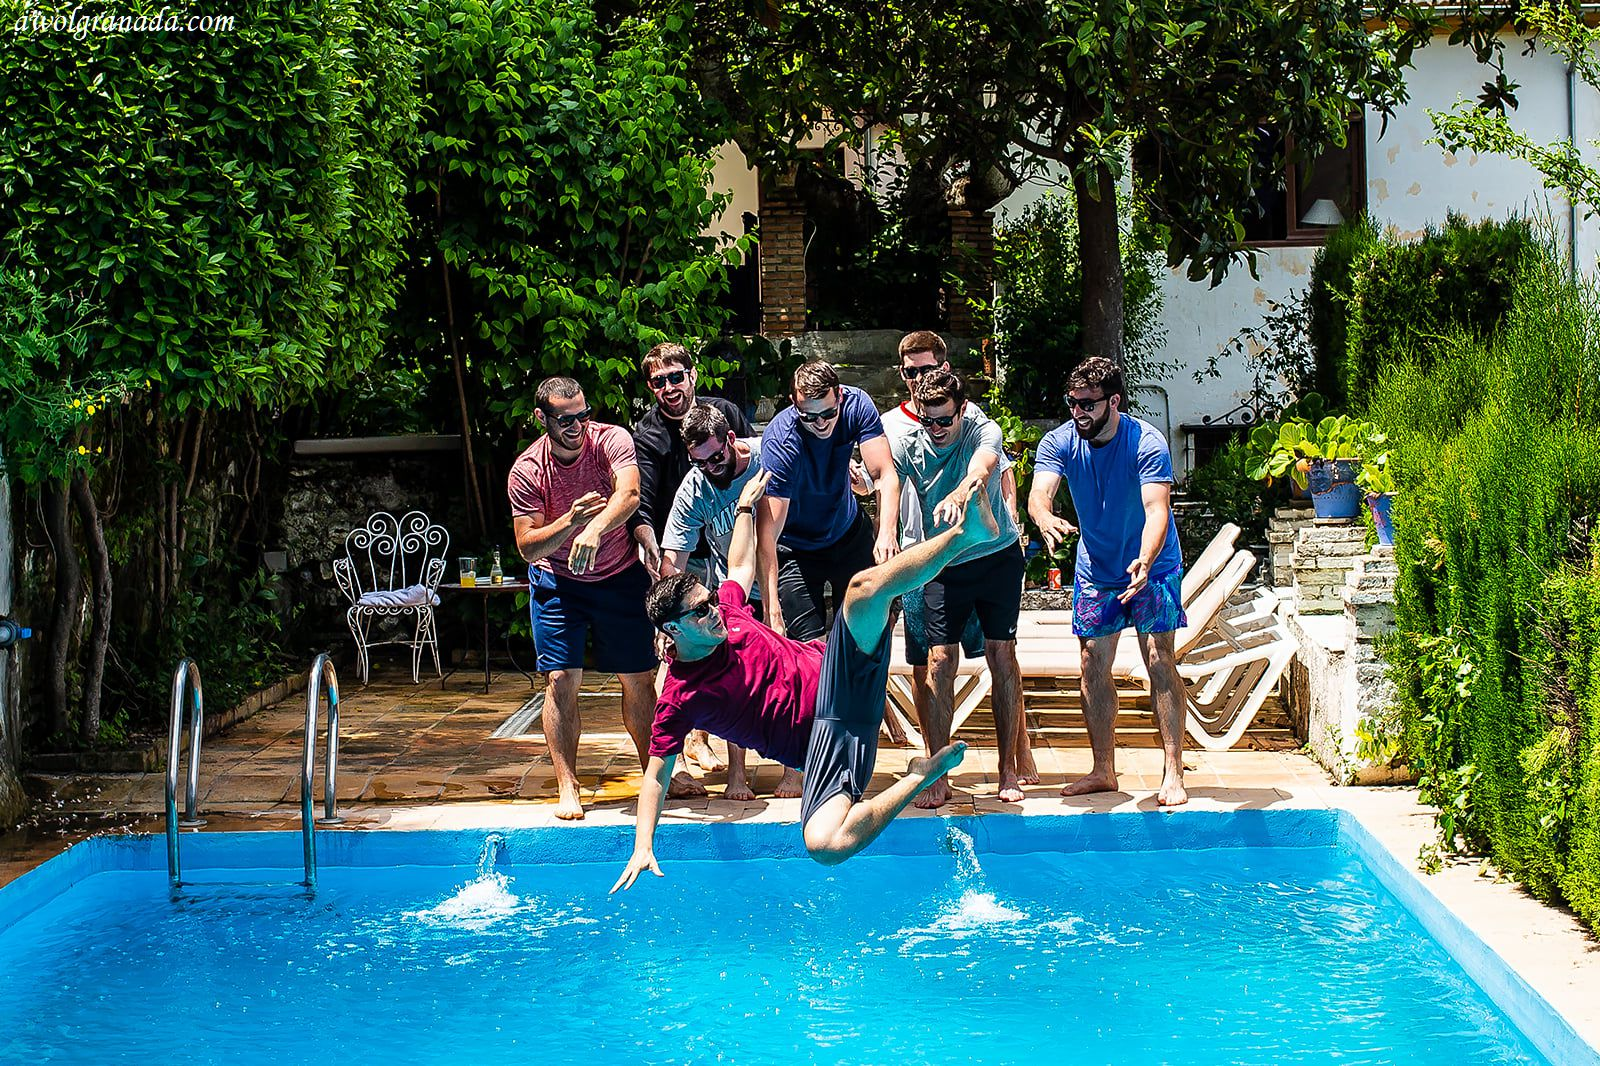 AWOL Granada, Wedding Planner, Spain - Wedding Day Pool Fun